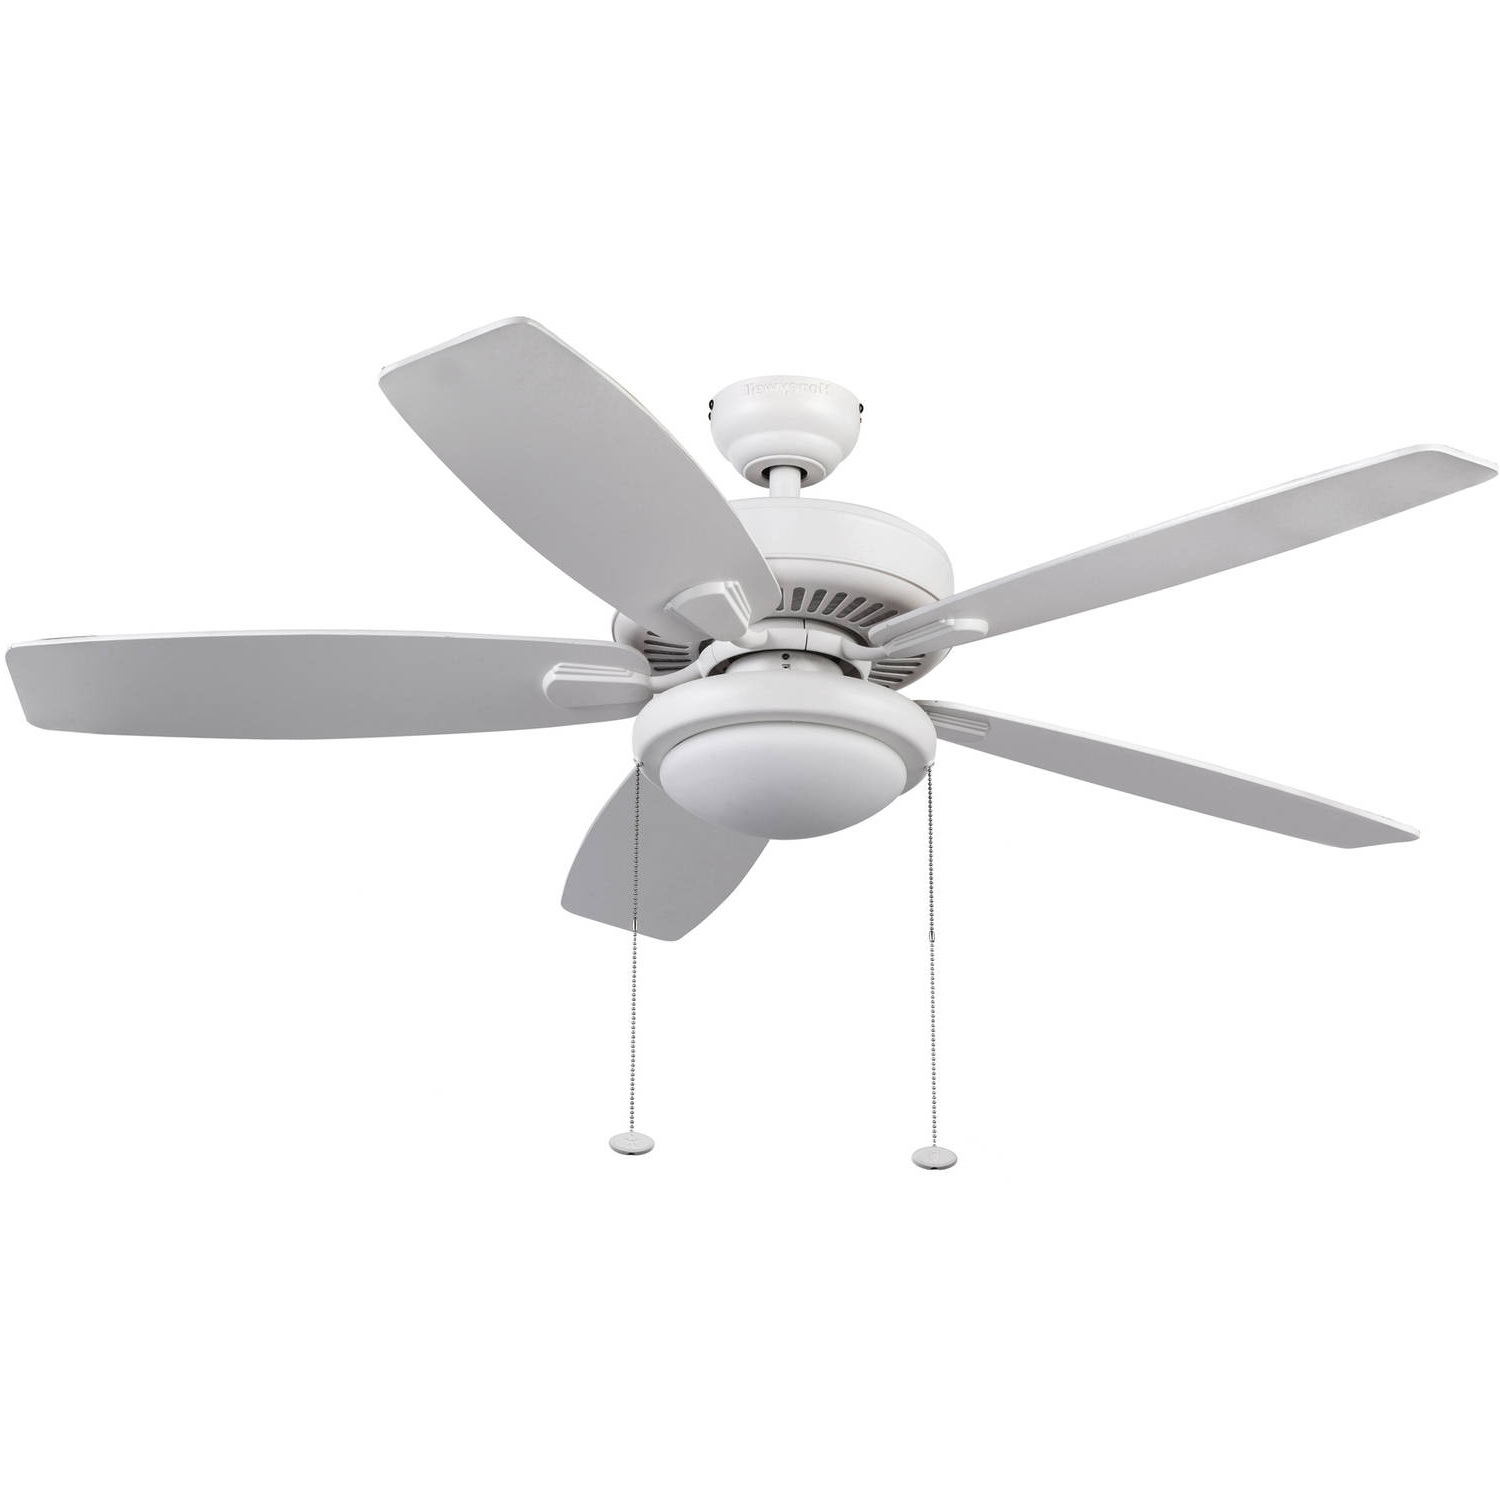 "White Outdoor Ceiling Fans With Lights Intended For Well Known Honeywell Blufton 52"" White Outdoor Ceiling Fan – Walmart (View 15 of 20)"